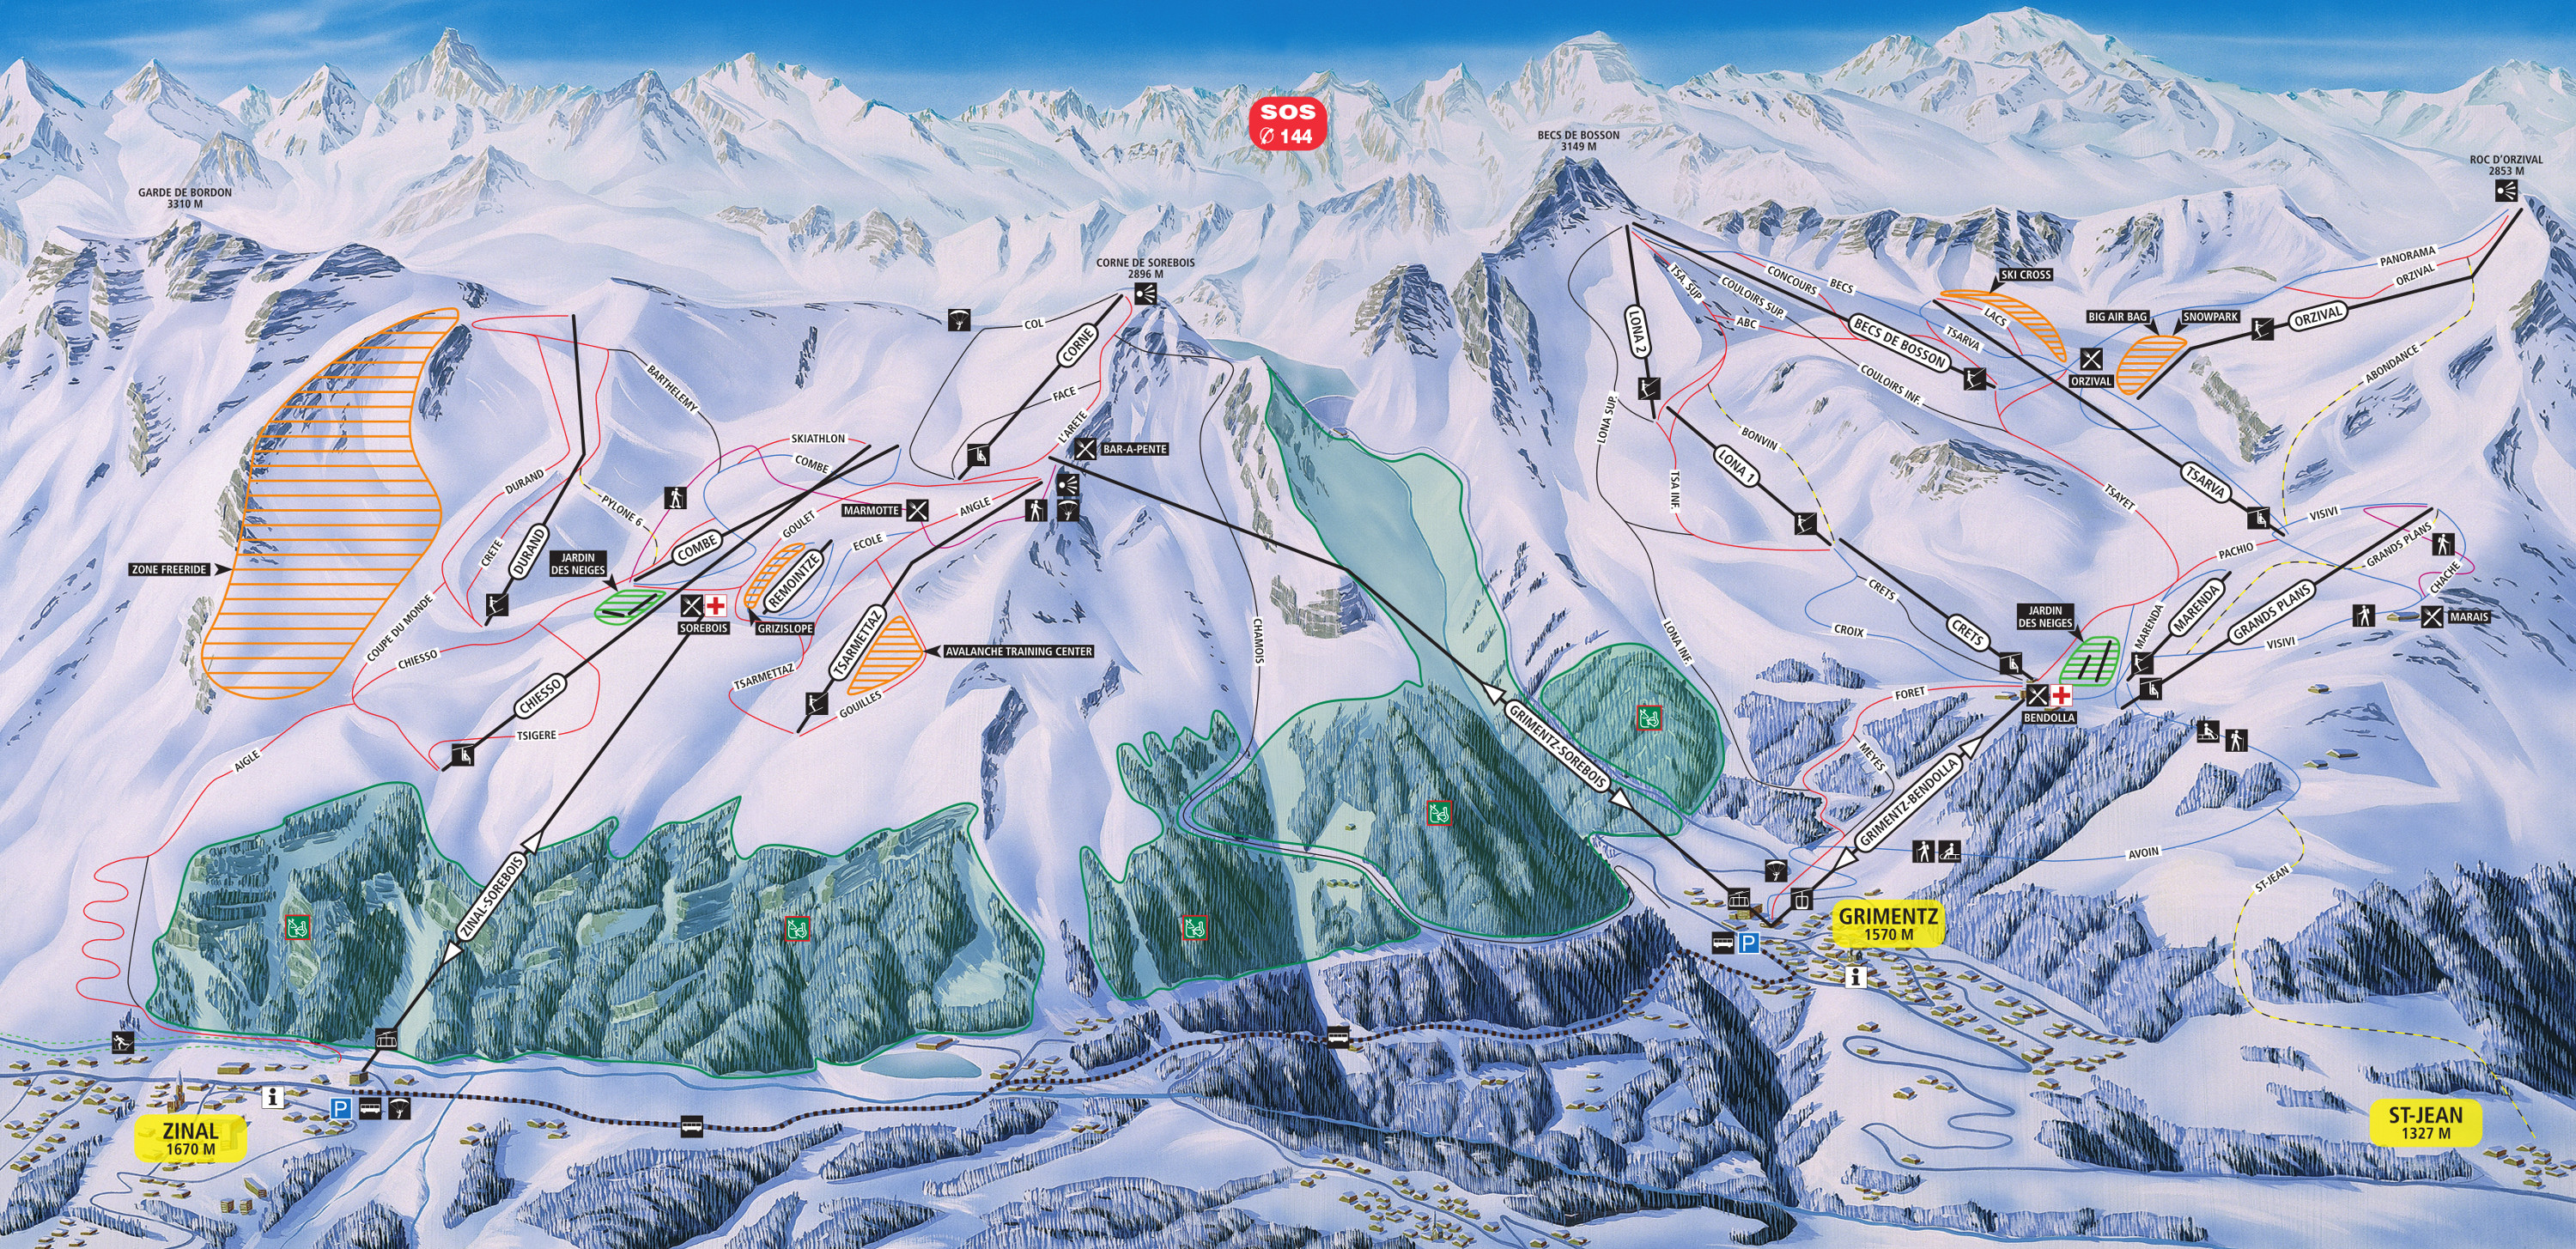 Grimentz Switzerland Tourism – Tourist Map of Switzerland